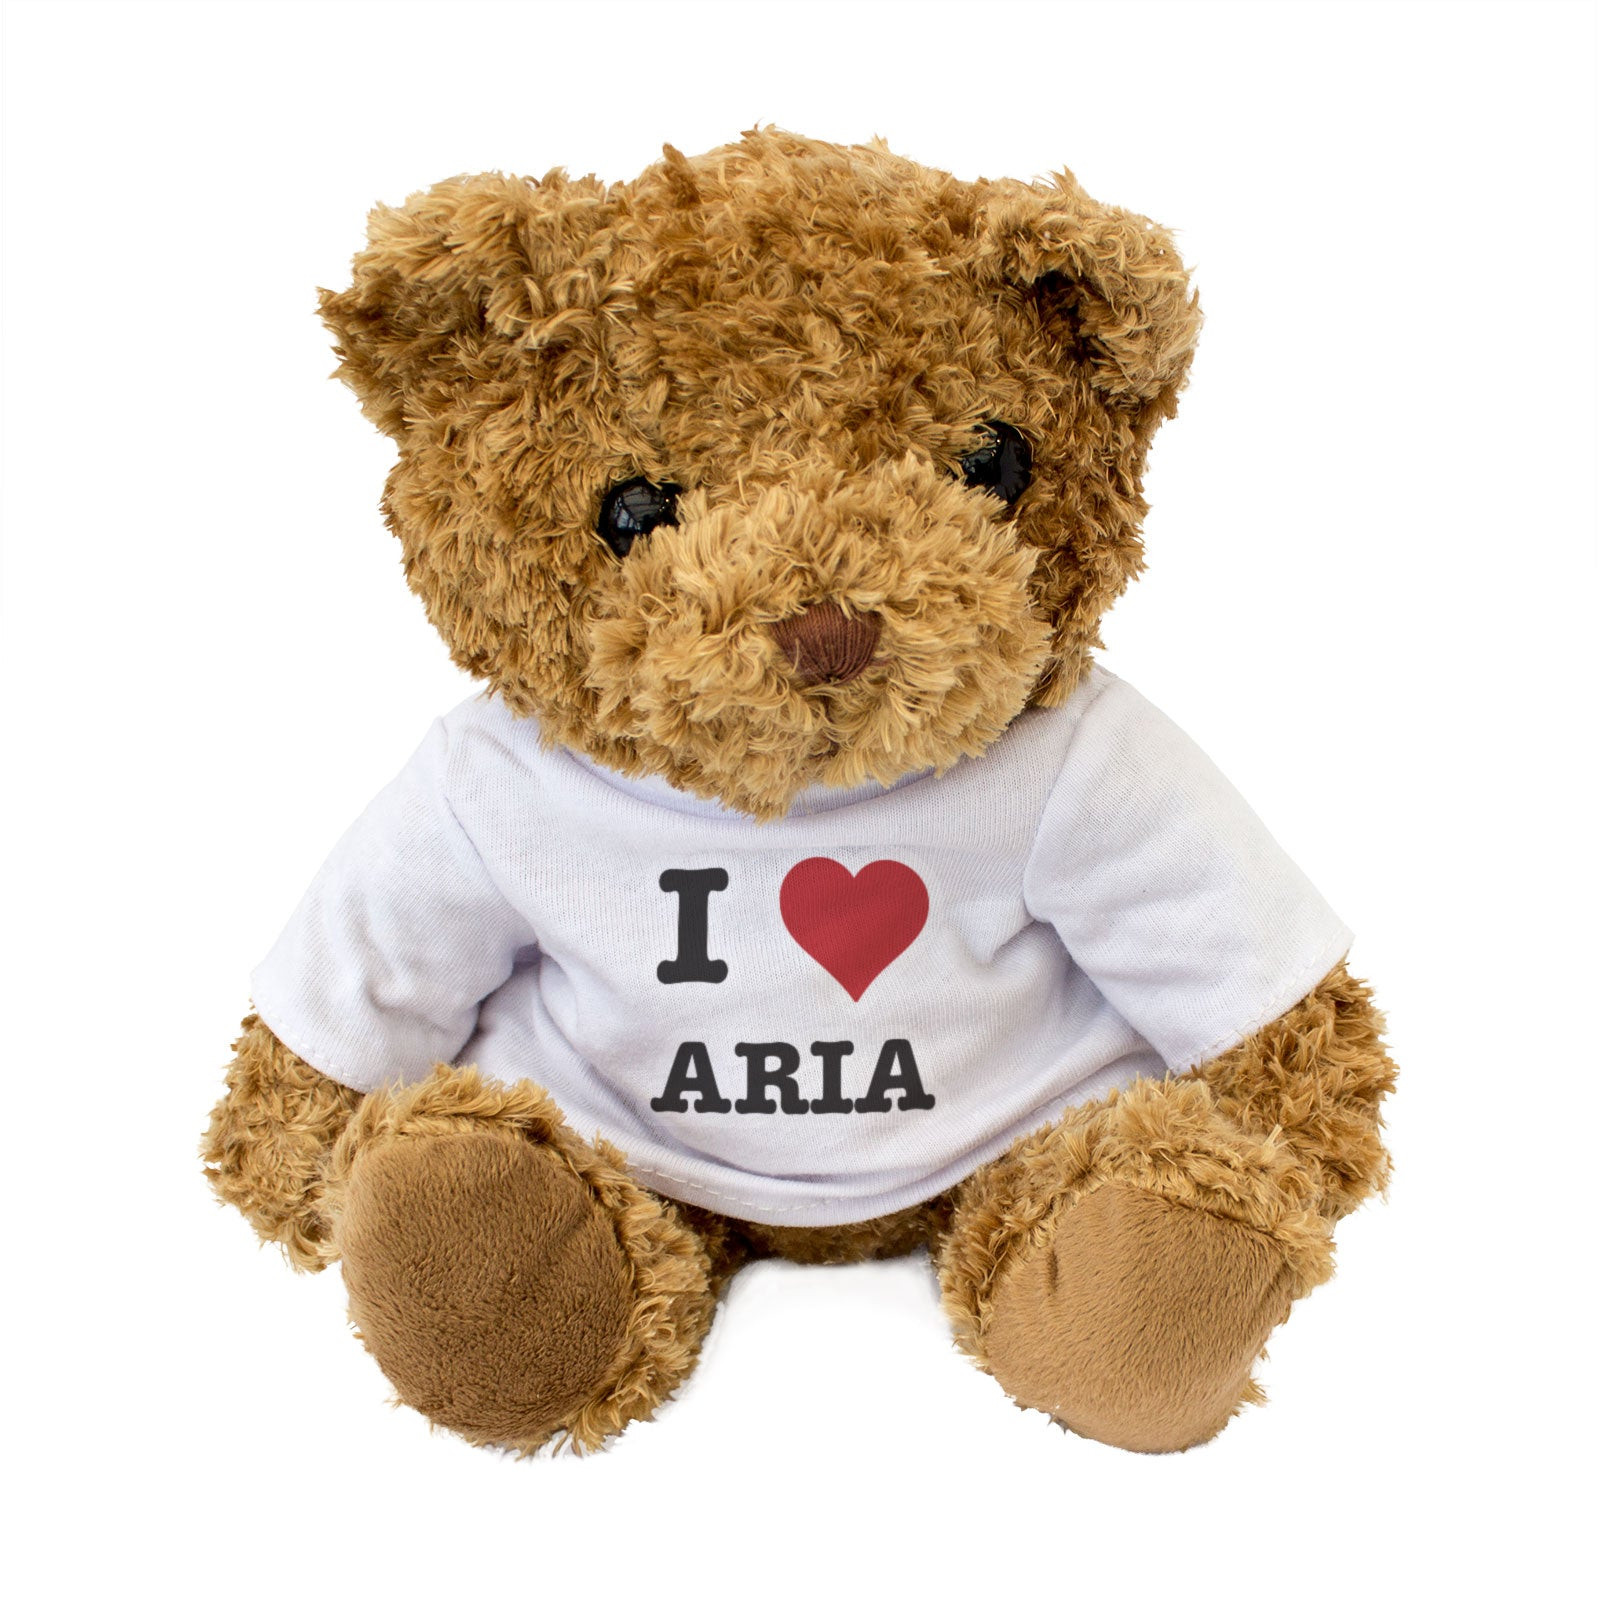 I Love Aria - Teddy Bear